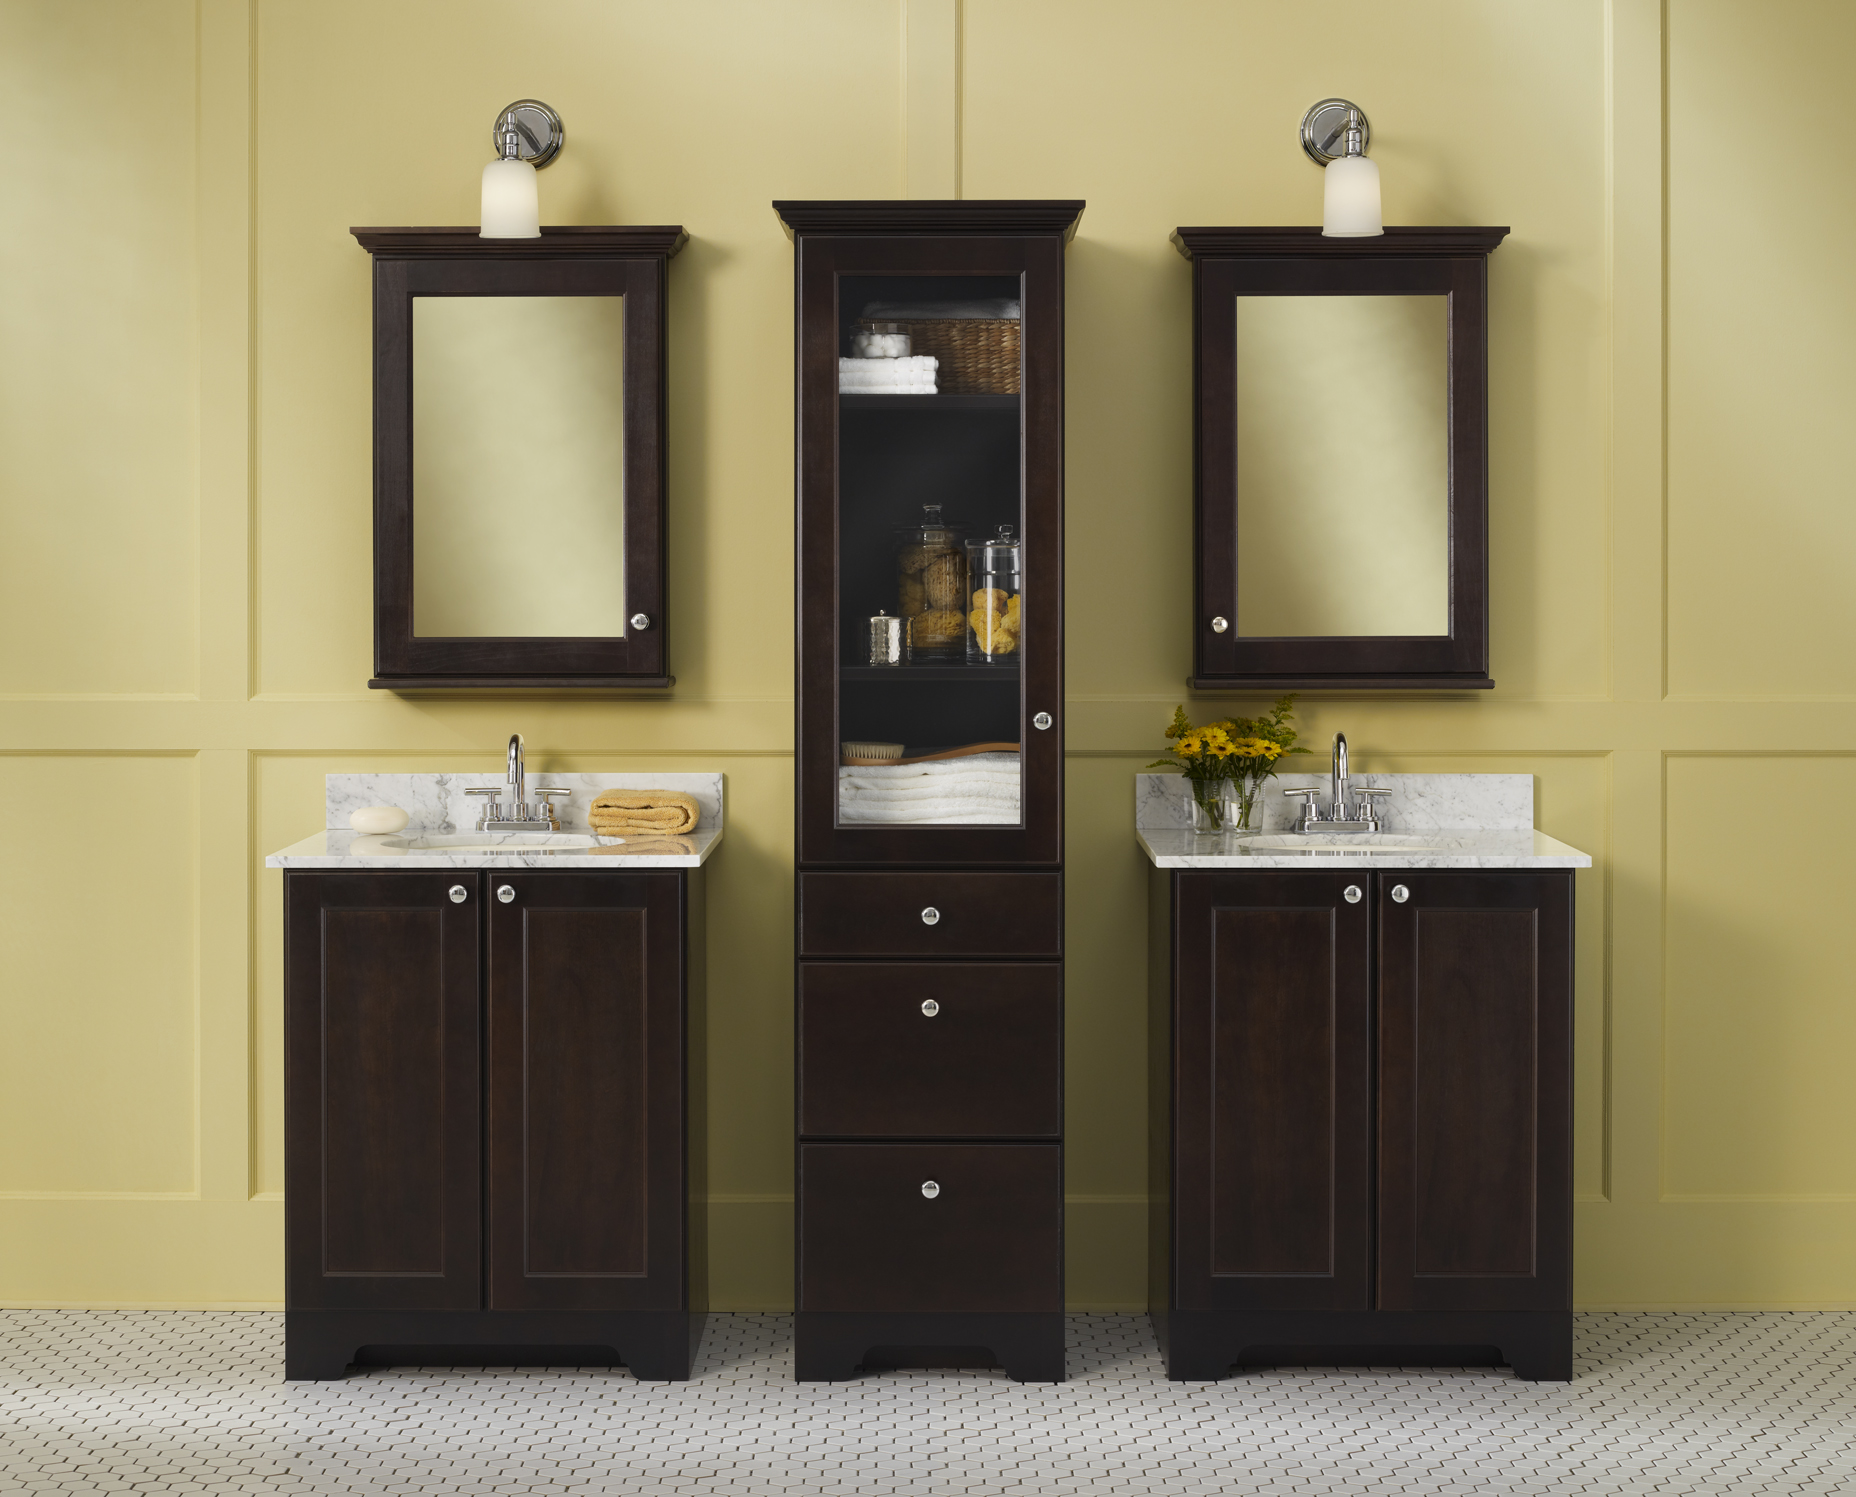 Monthly Manufacturer Spotlight: Designers Choice Cabinetry